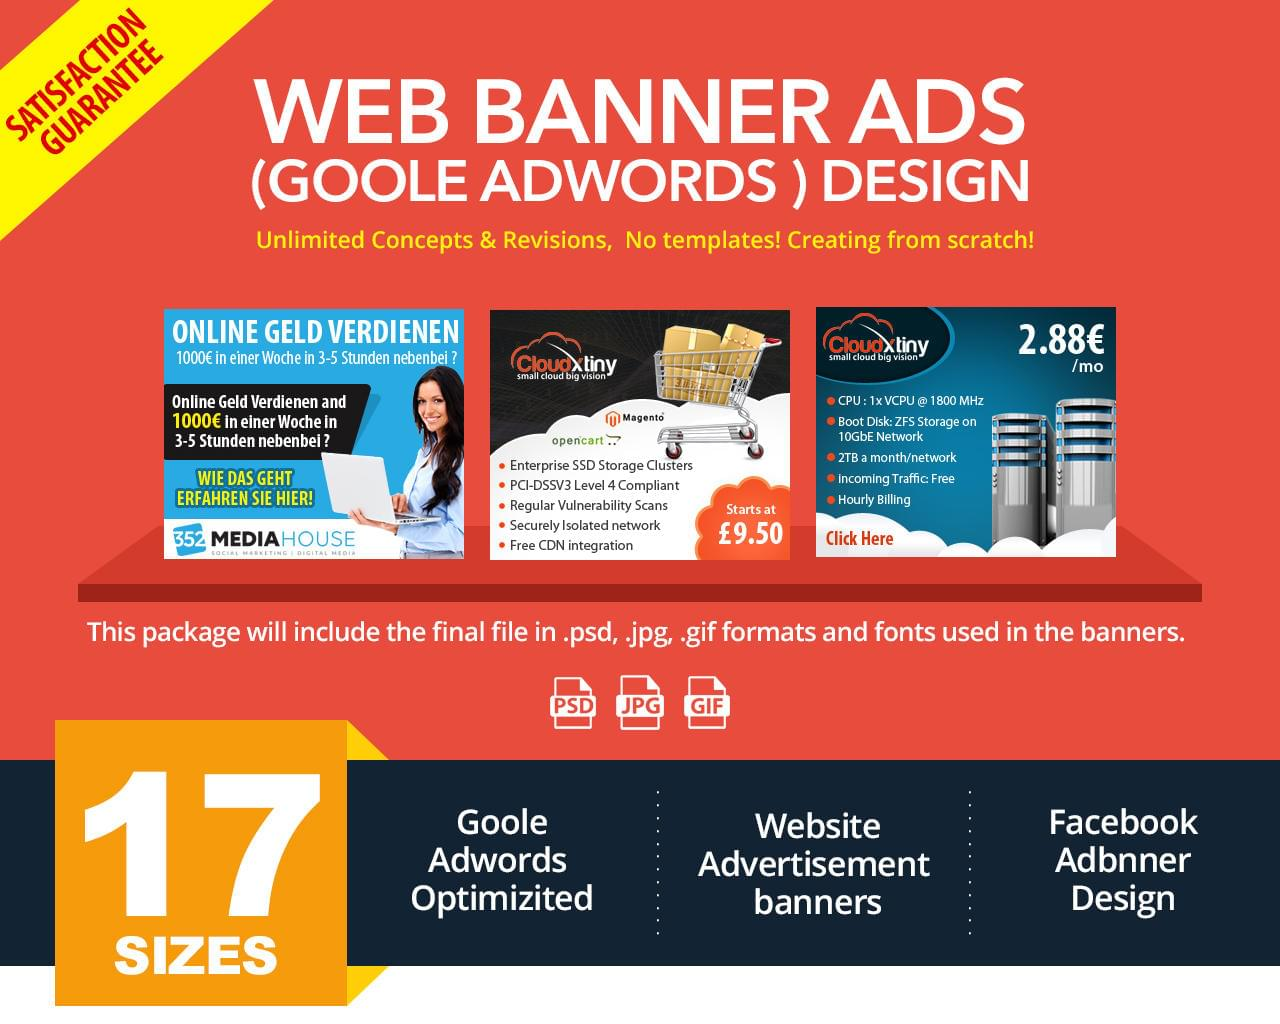 Web Banner Design by sudiptaexpert - 111630